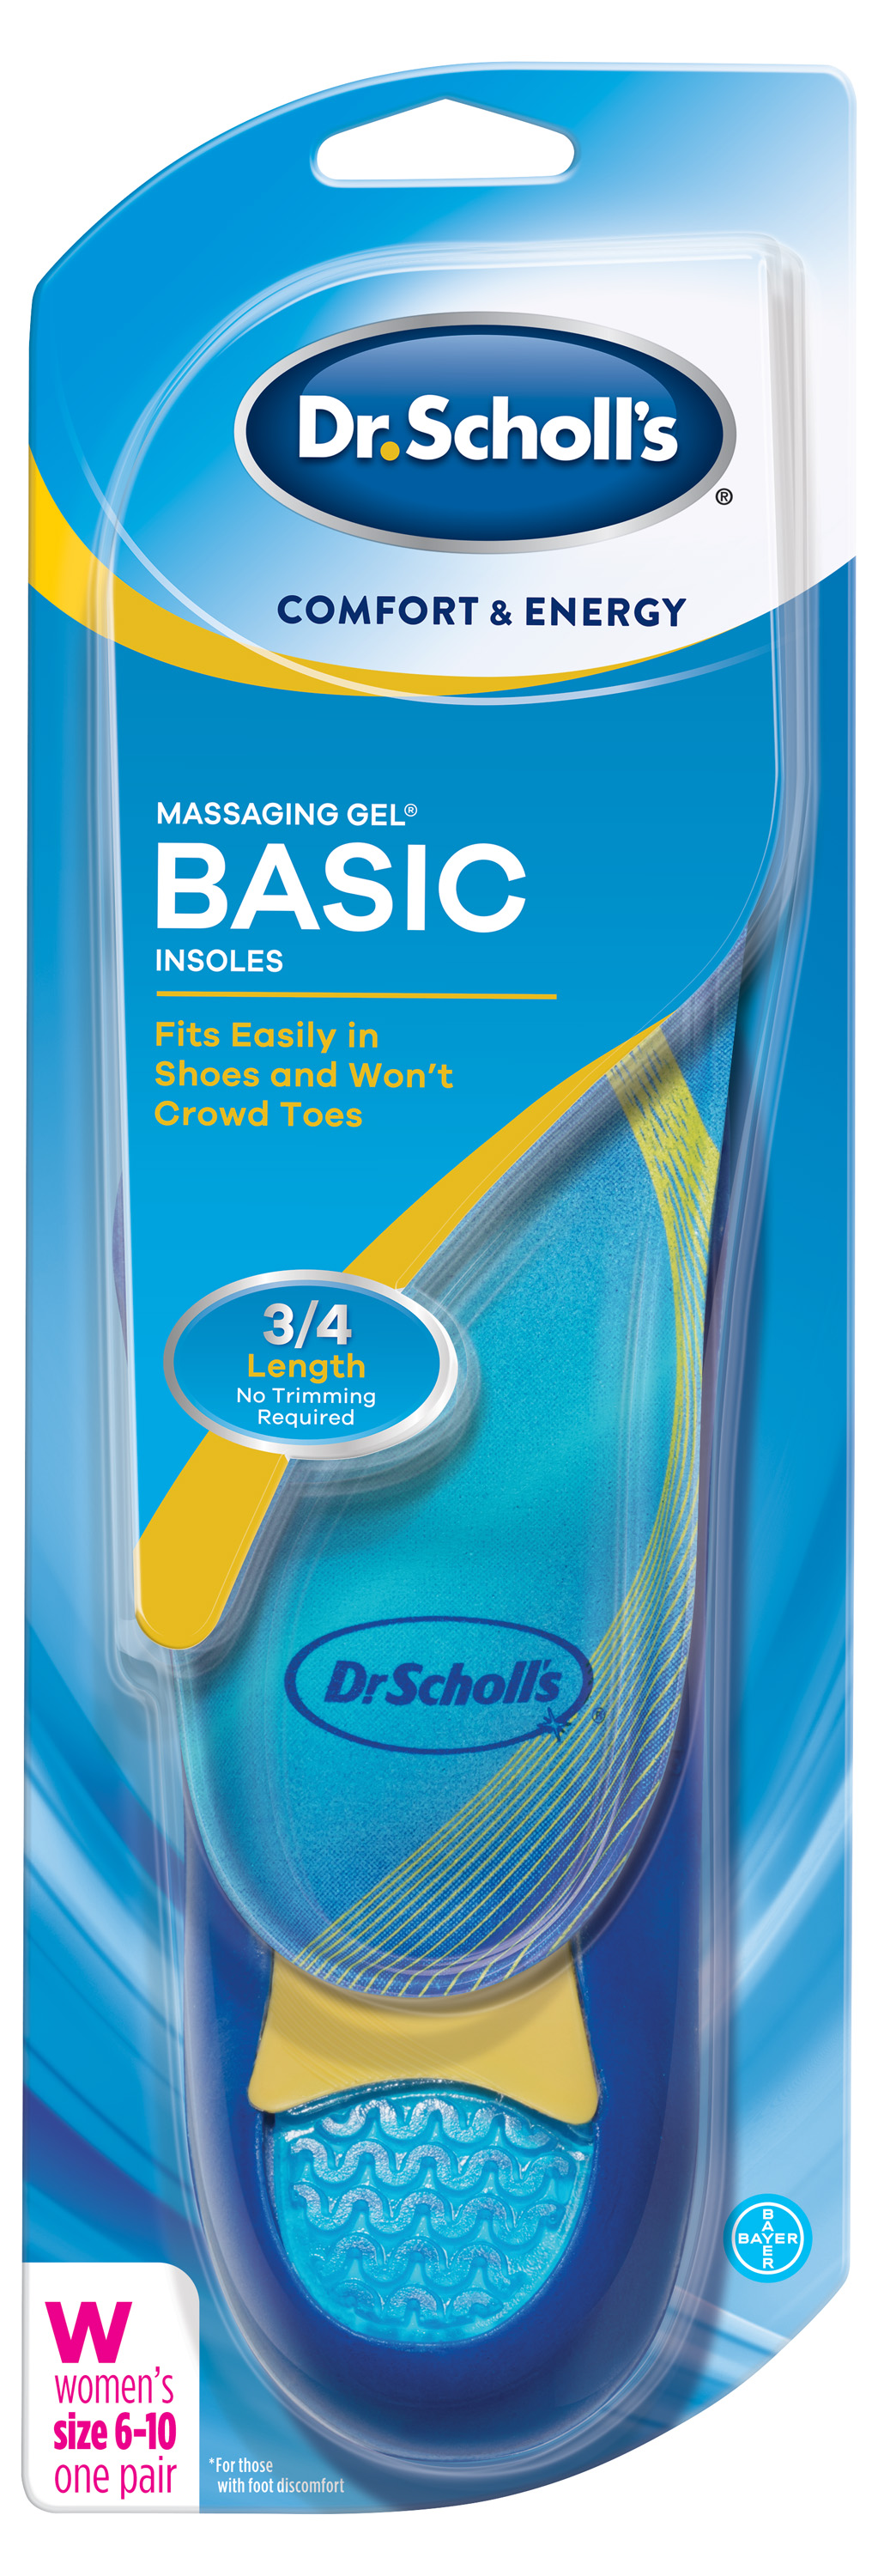 Dr. Scholl's Comfort & Energy Massaging Gel Basic Insoles for Women by Bayer Healthcare LLC